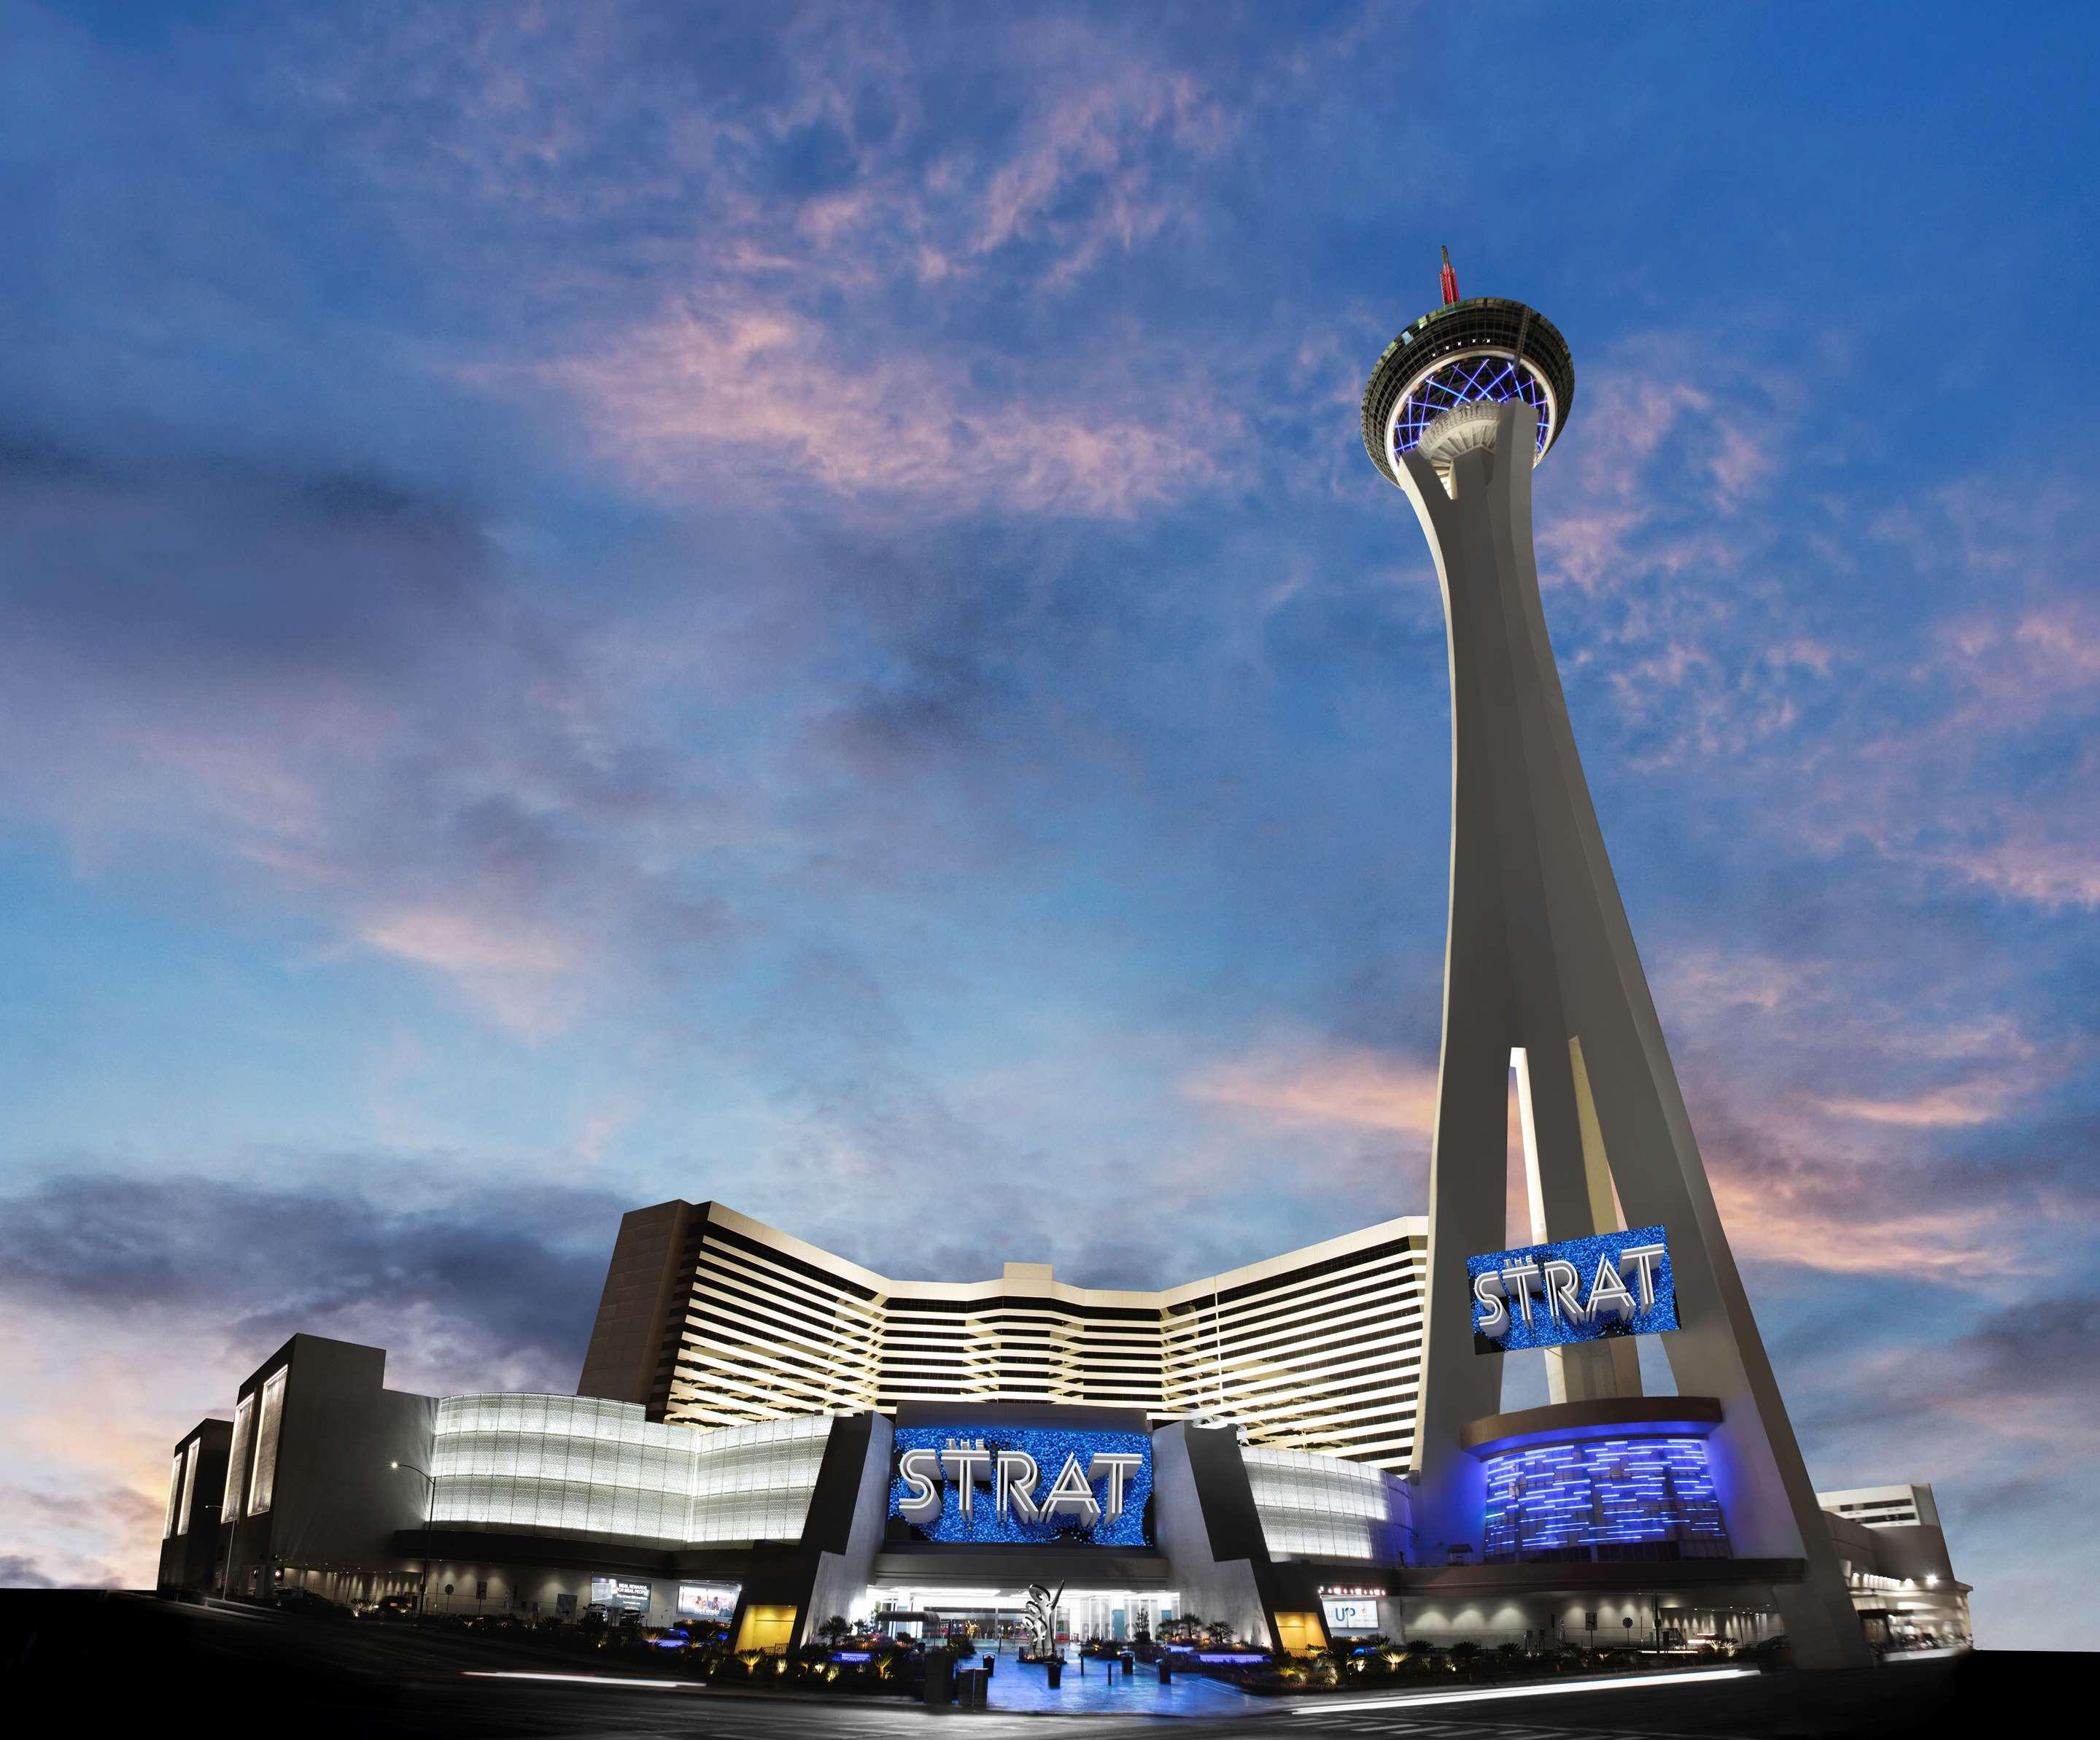 The STRAT Hotel, Casino & Skypod, BW Premier Collection